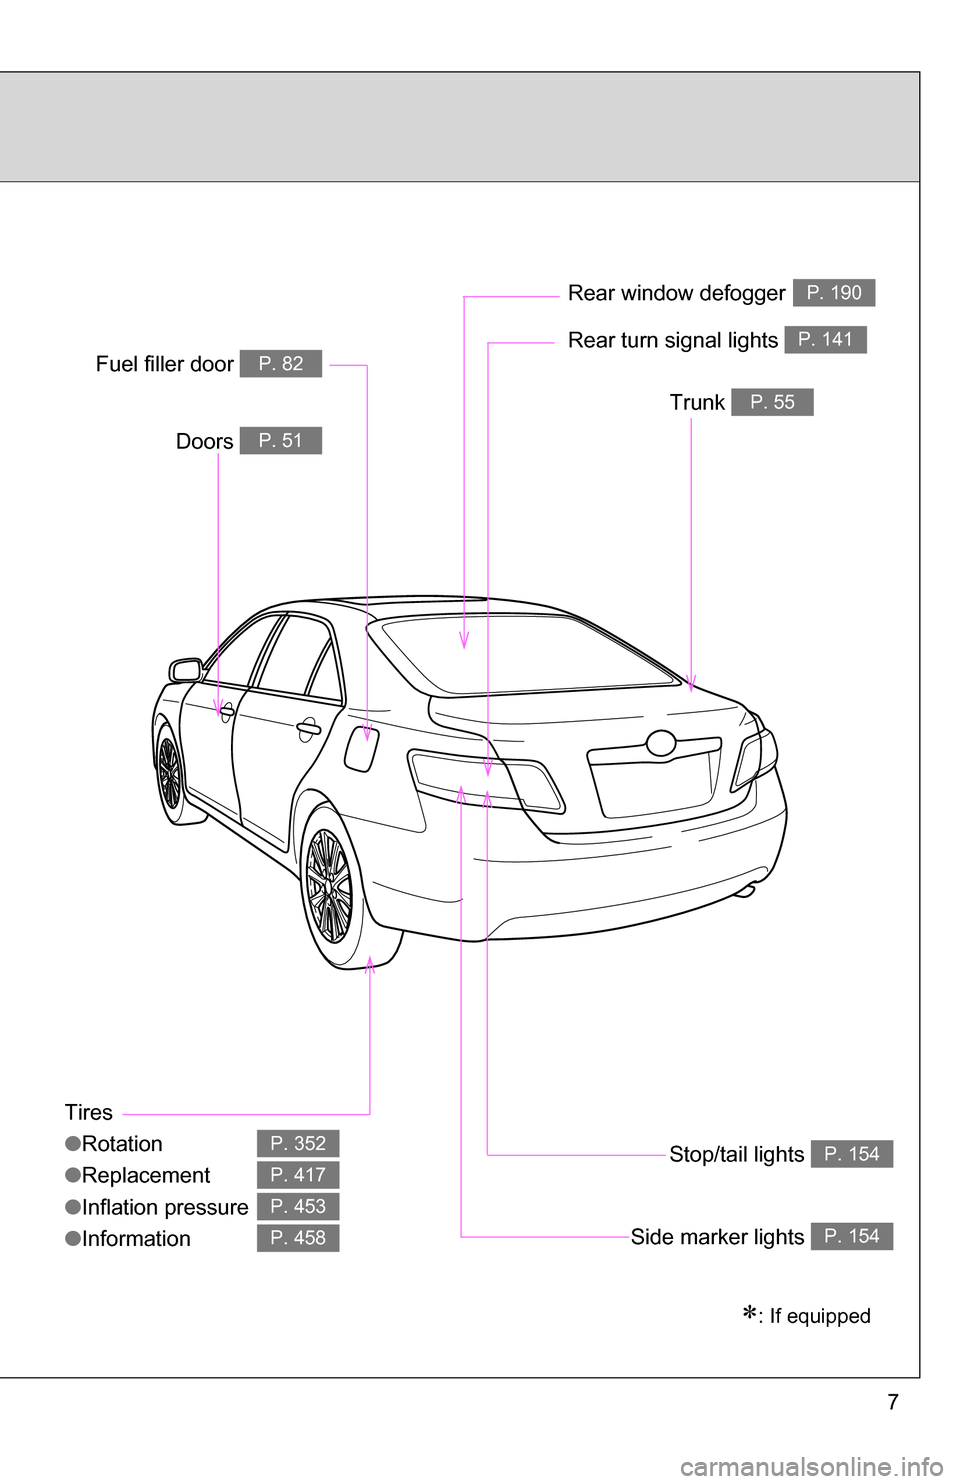 TOYOTA CAMRY HYBRID 2010 XV40 / 8.G Owners Manual, Page 7